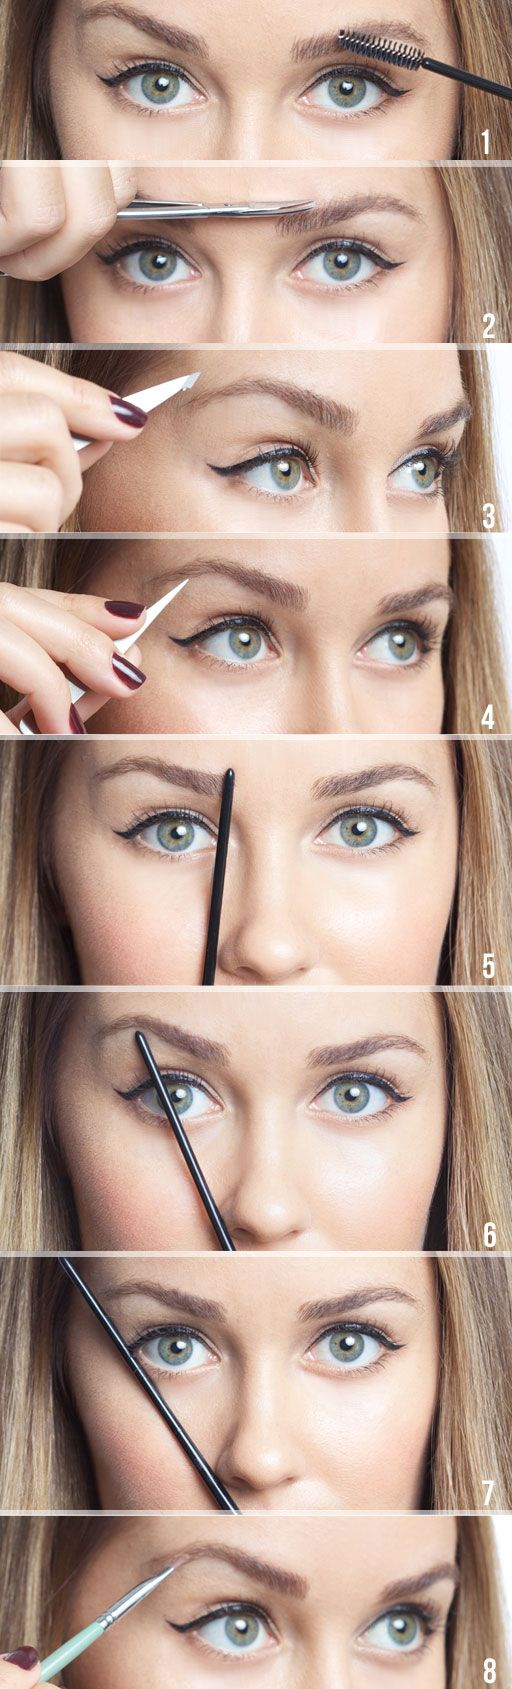 How to perfectly shape your brows! So handy